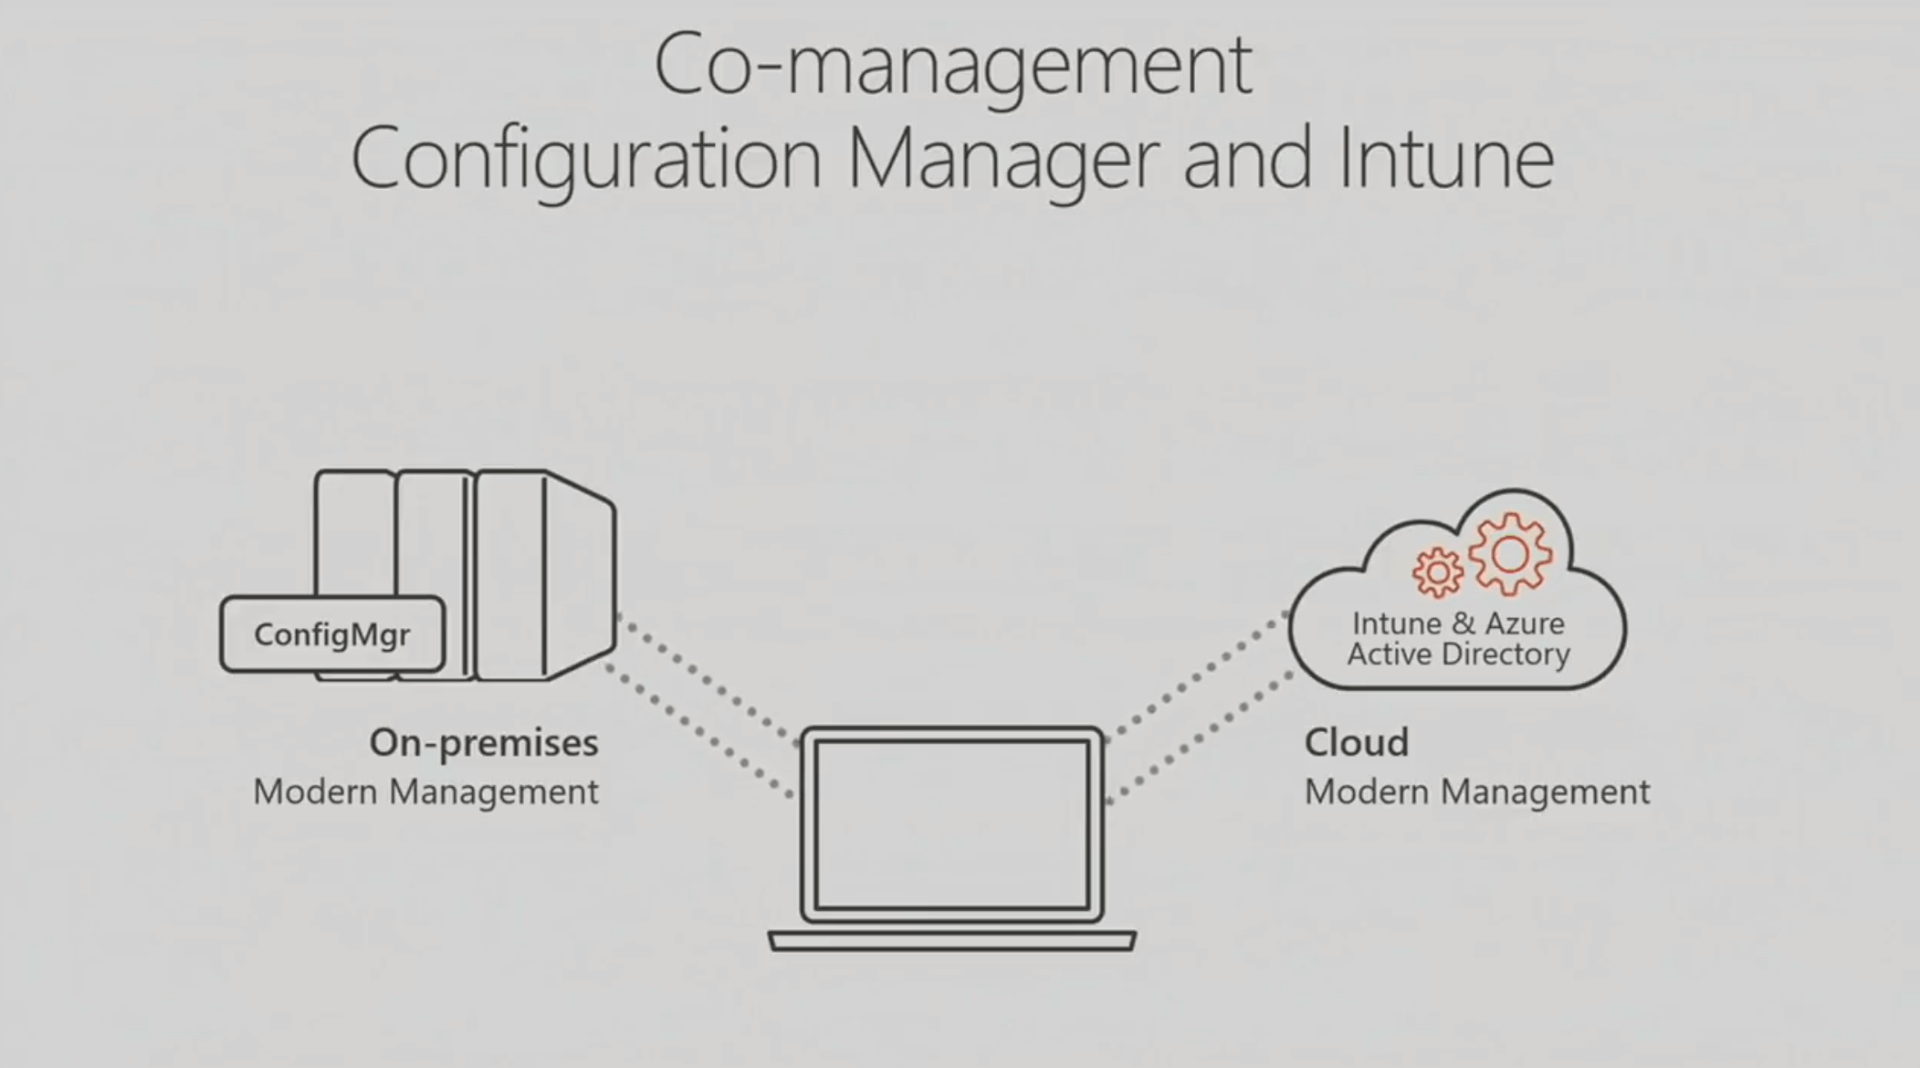 Texte de remplacement généré par une machine : Co-management Configuration Manager and Intune ConfigMgr On-premises Modern Management Intune & Azure Active Directory Cloud Modern Management